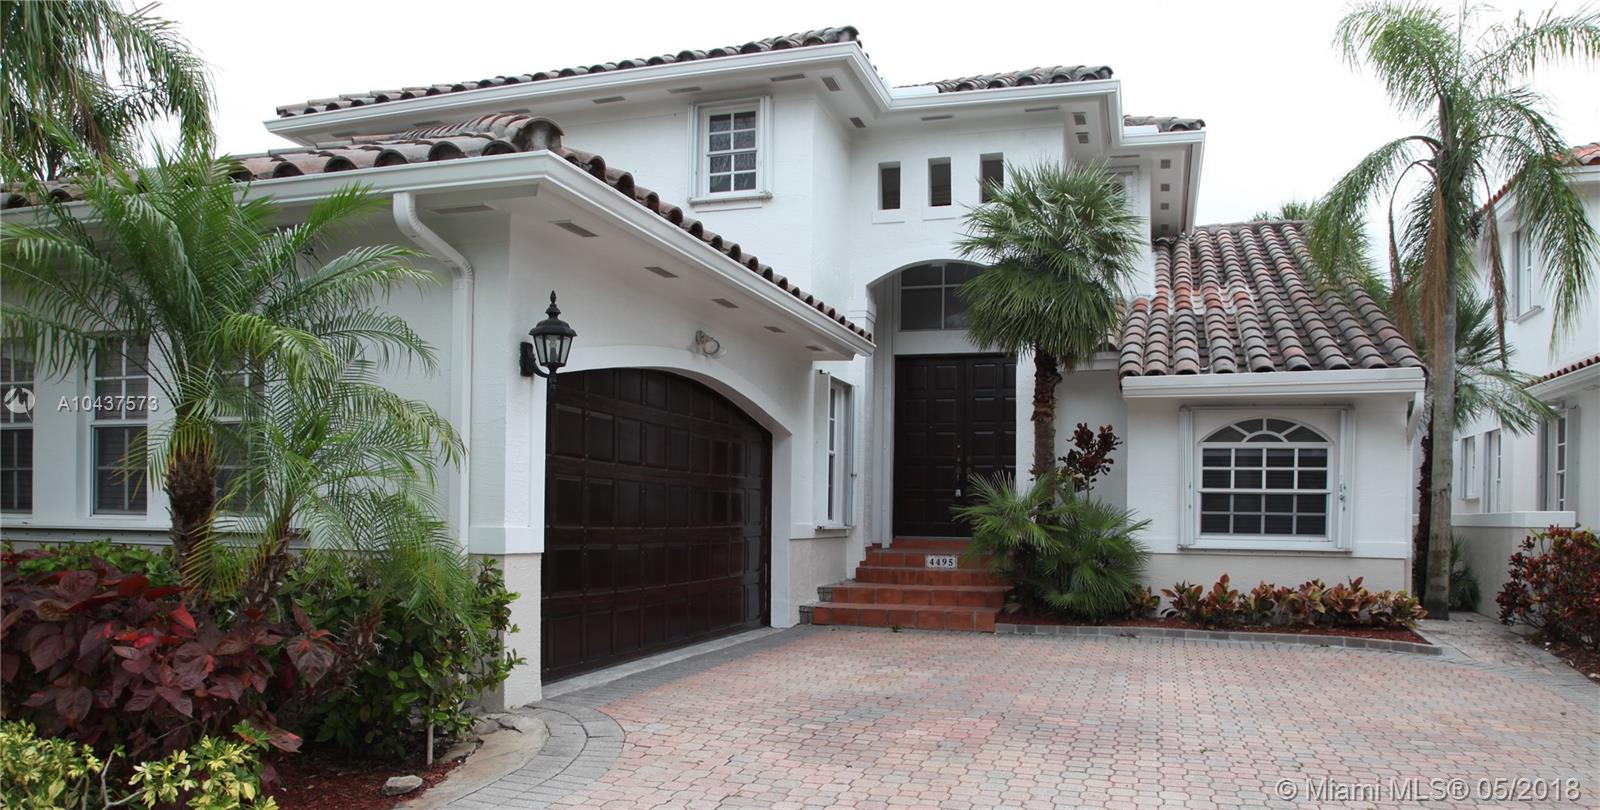 Image 2 For 4495 93rd Doral Ct